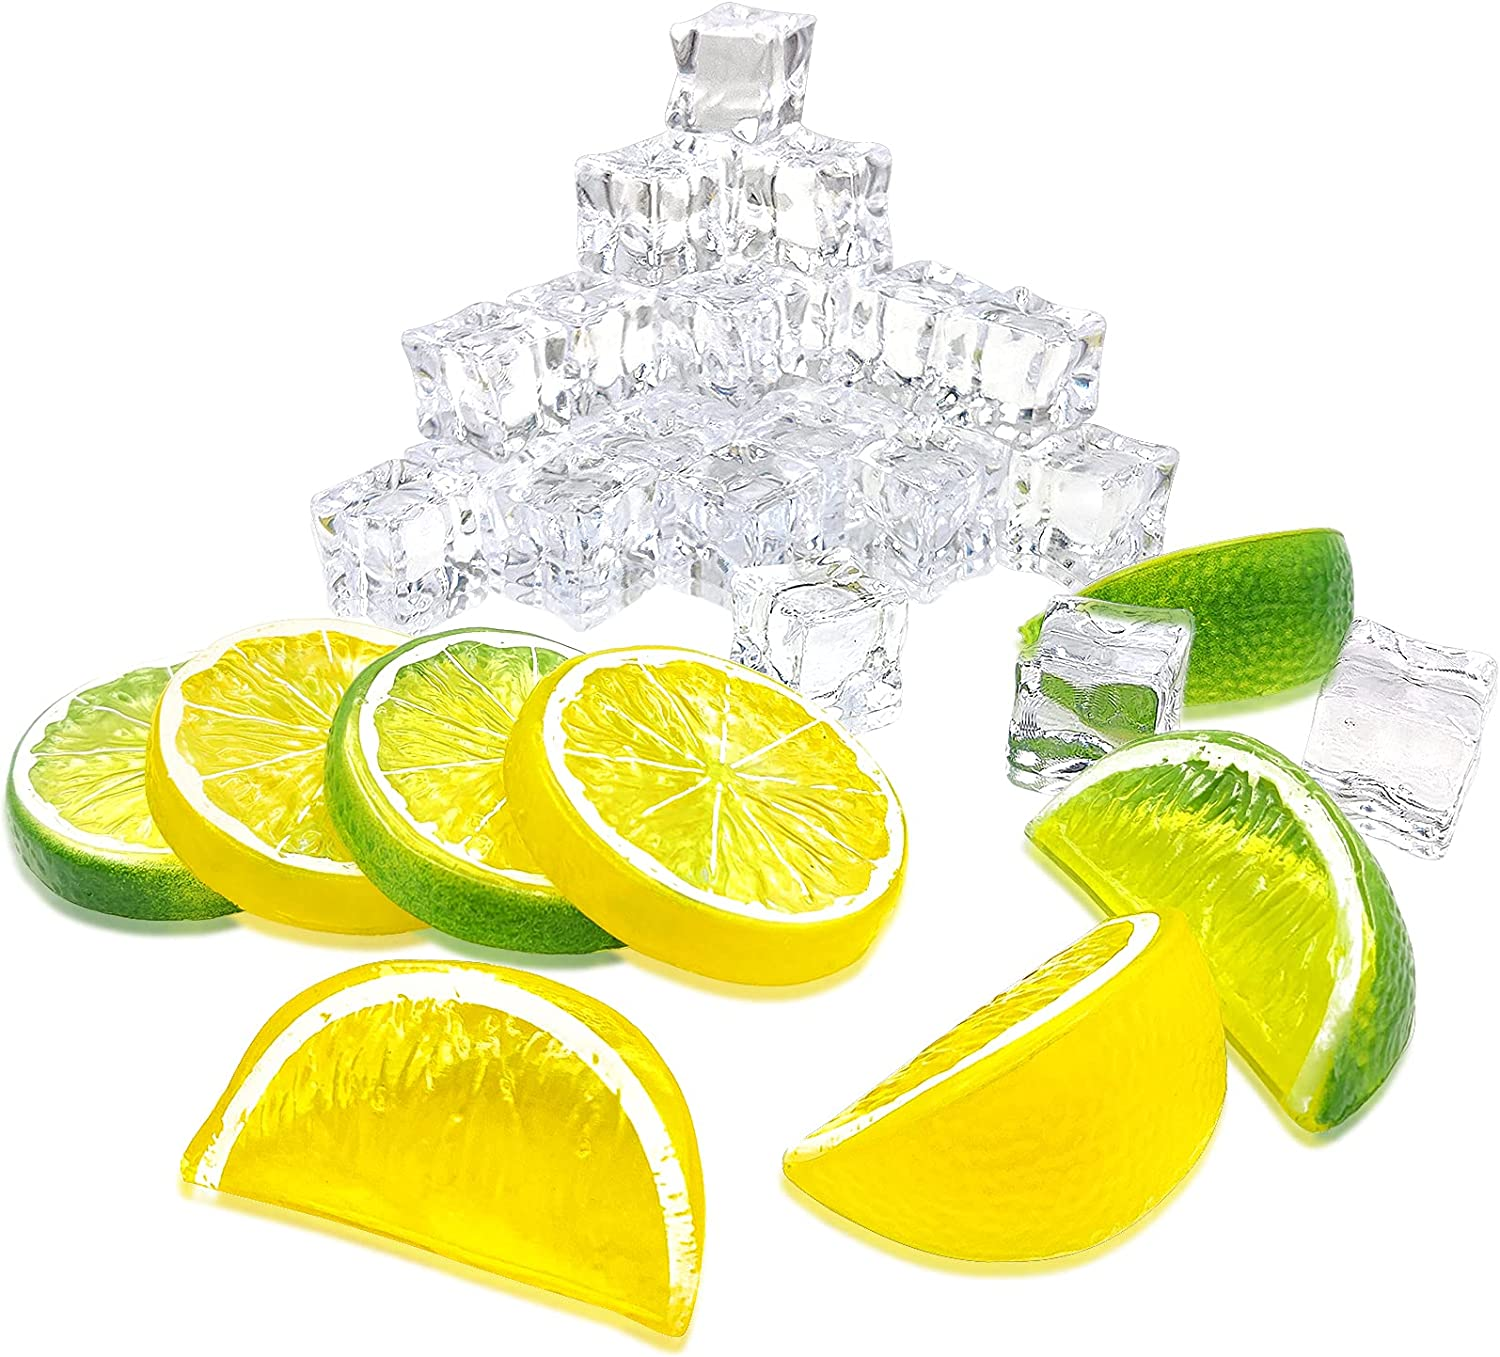 Fake Lemons Slices Blocks and Acrylic Ice Cube Set - Pack of 38 Creative Decorative Items - Artificial Decorations for Home Kitchen Office Weddings Table Centerpiece Party with Lemon Tree Decor Theme